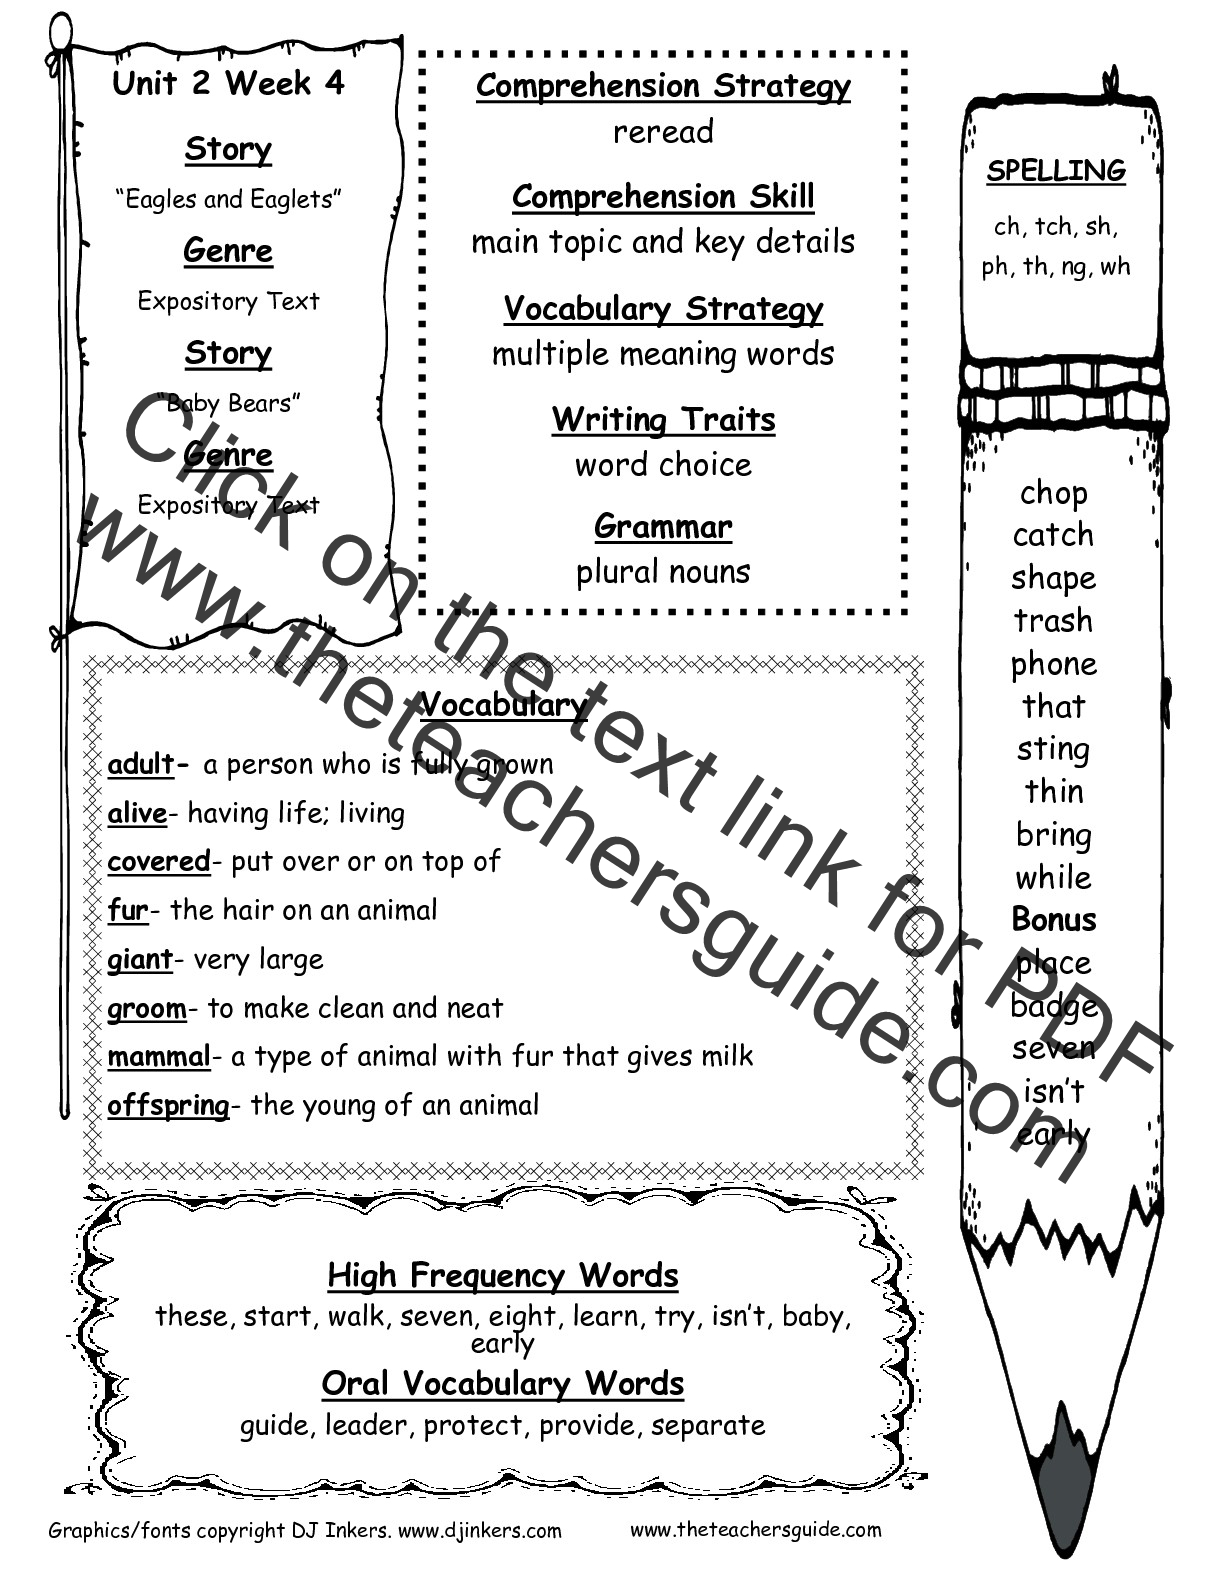 Uncategorized Multiple Meaning Words Worksheet multiple meaning words worksheets 3rd grade termolak teaching lawteched